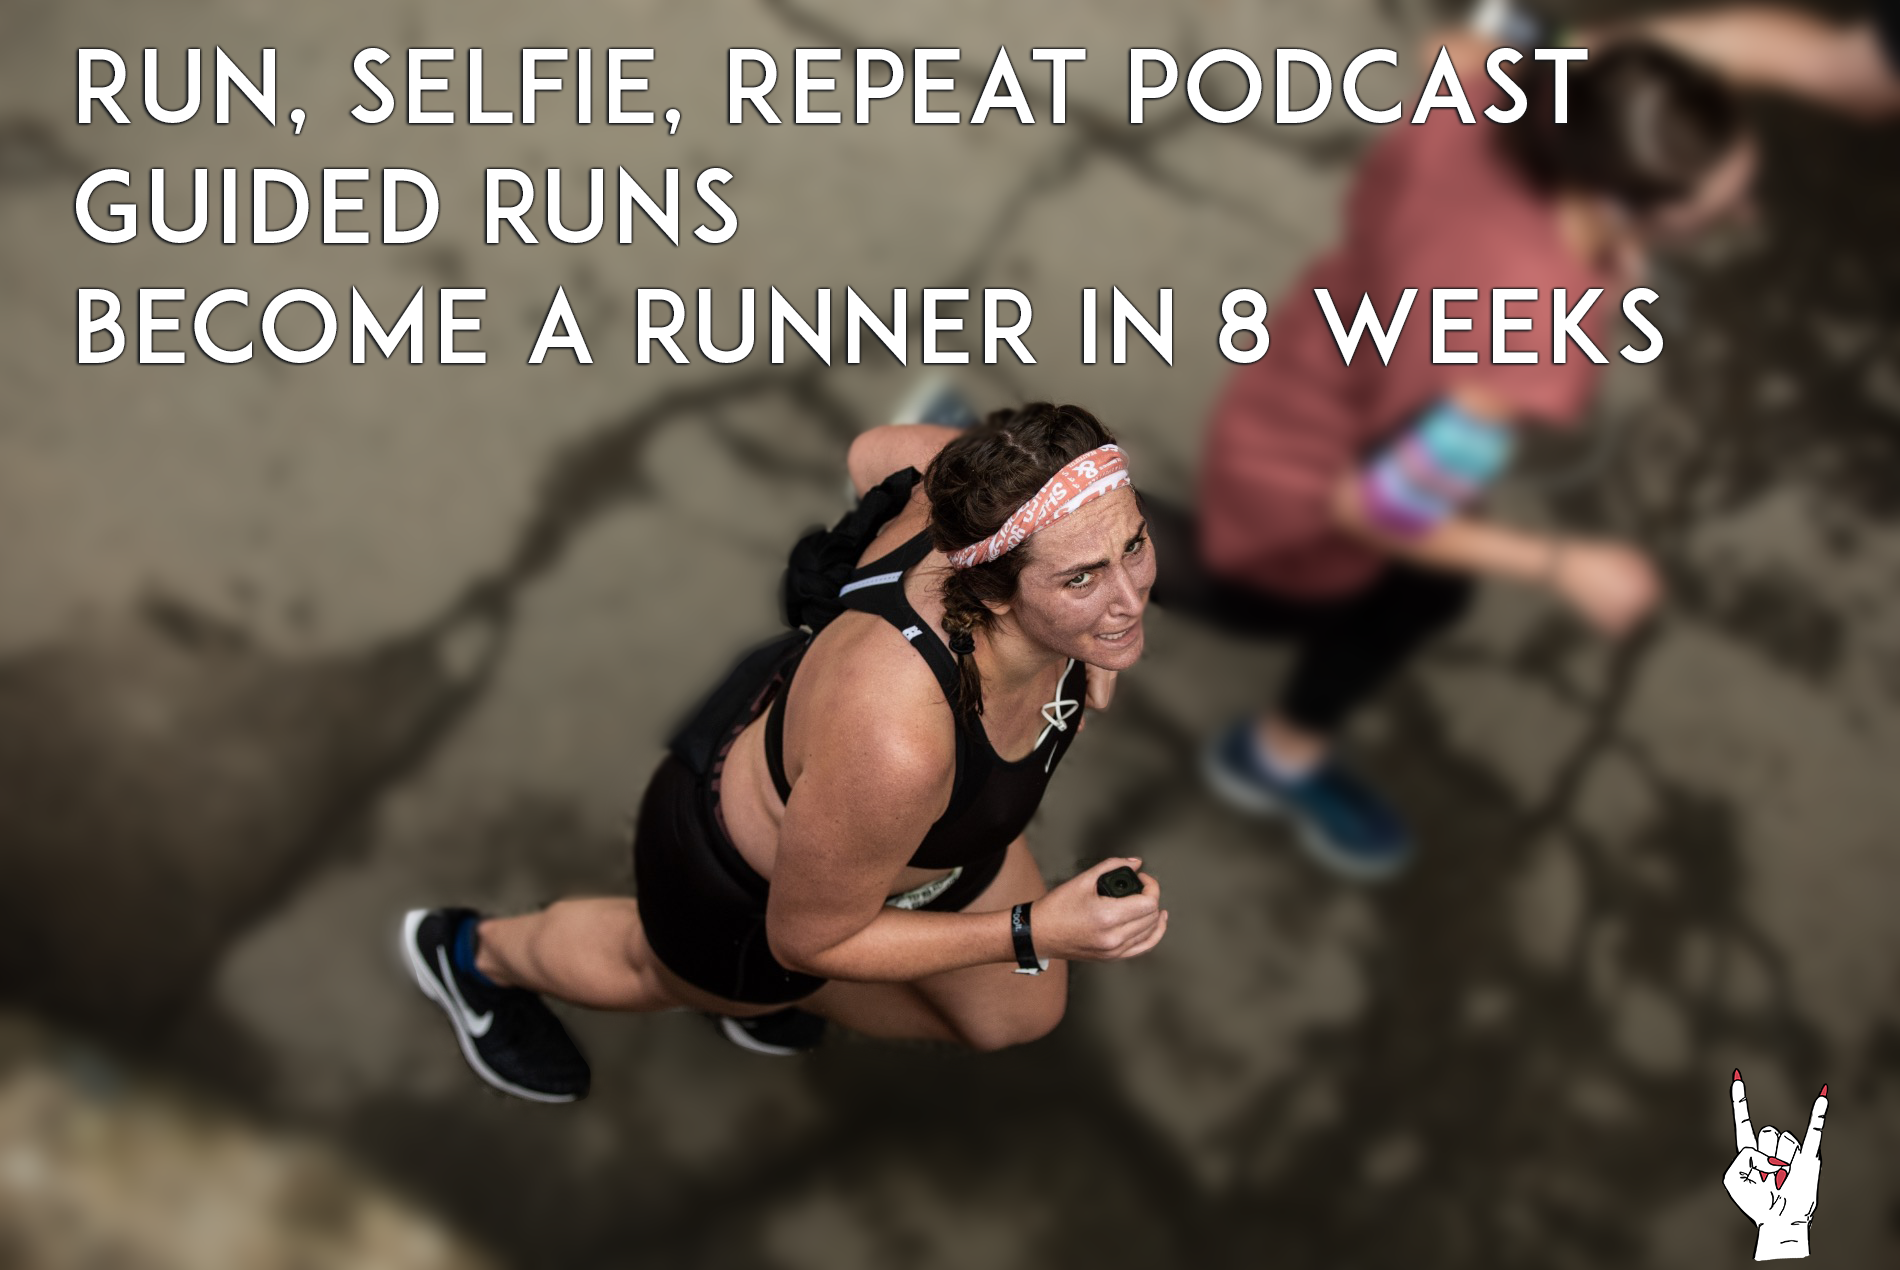 become a runner 8 weeks.png